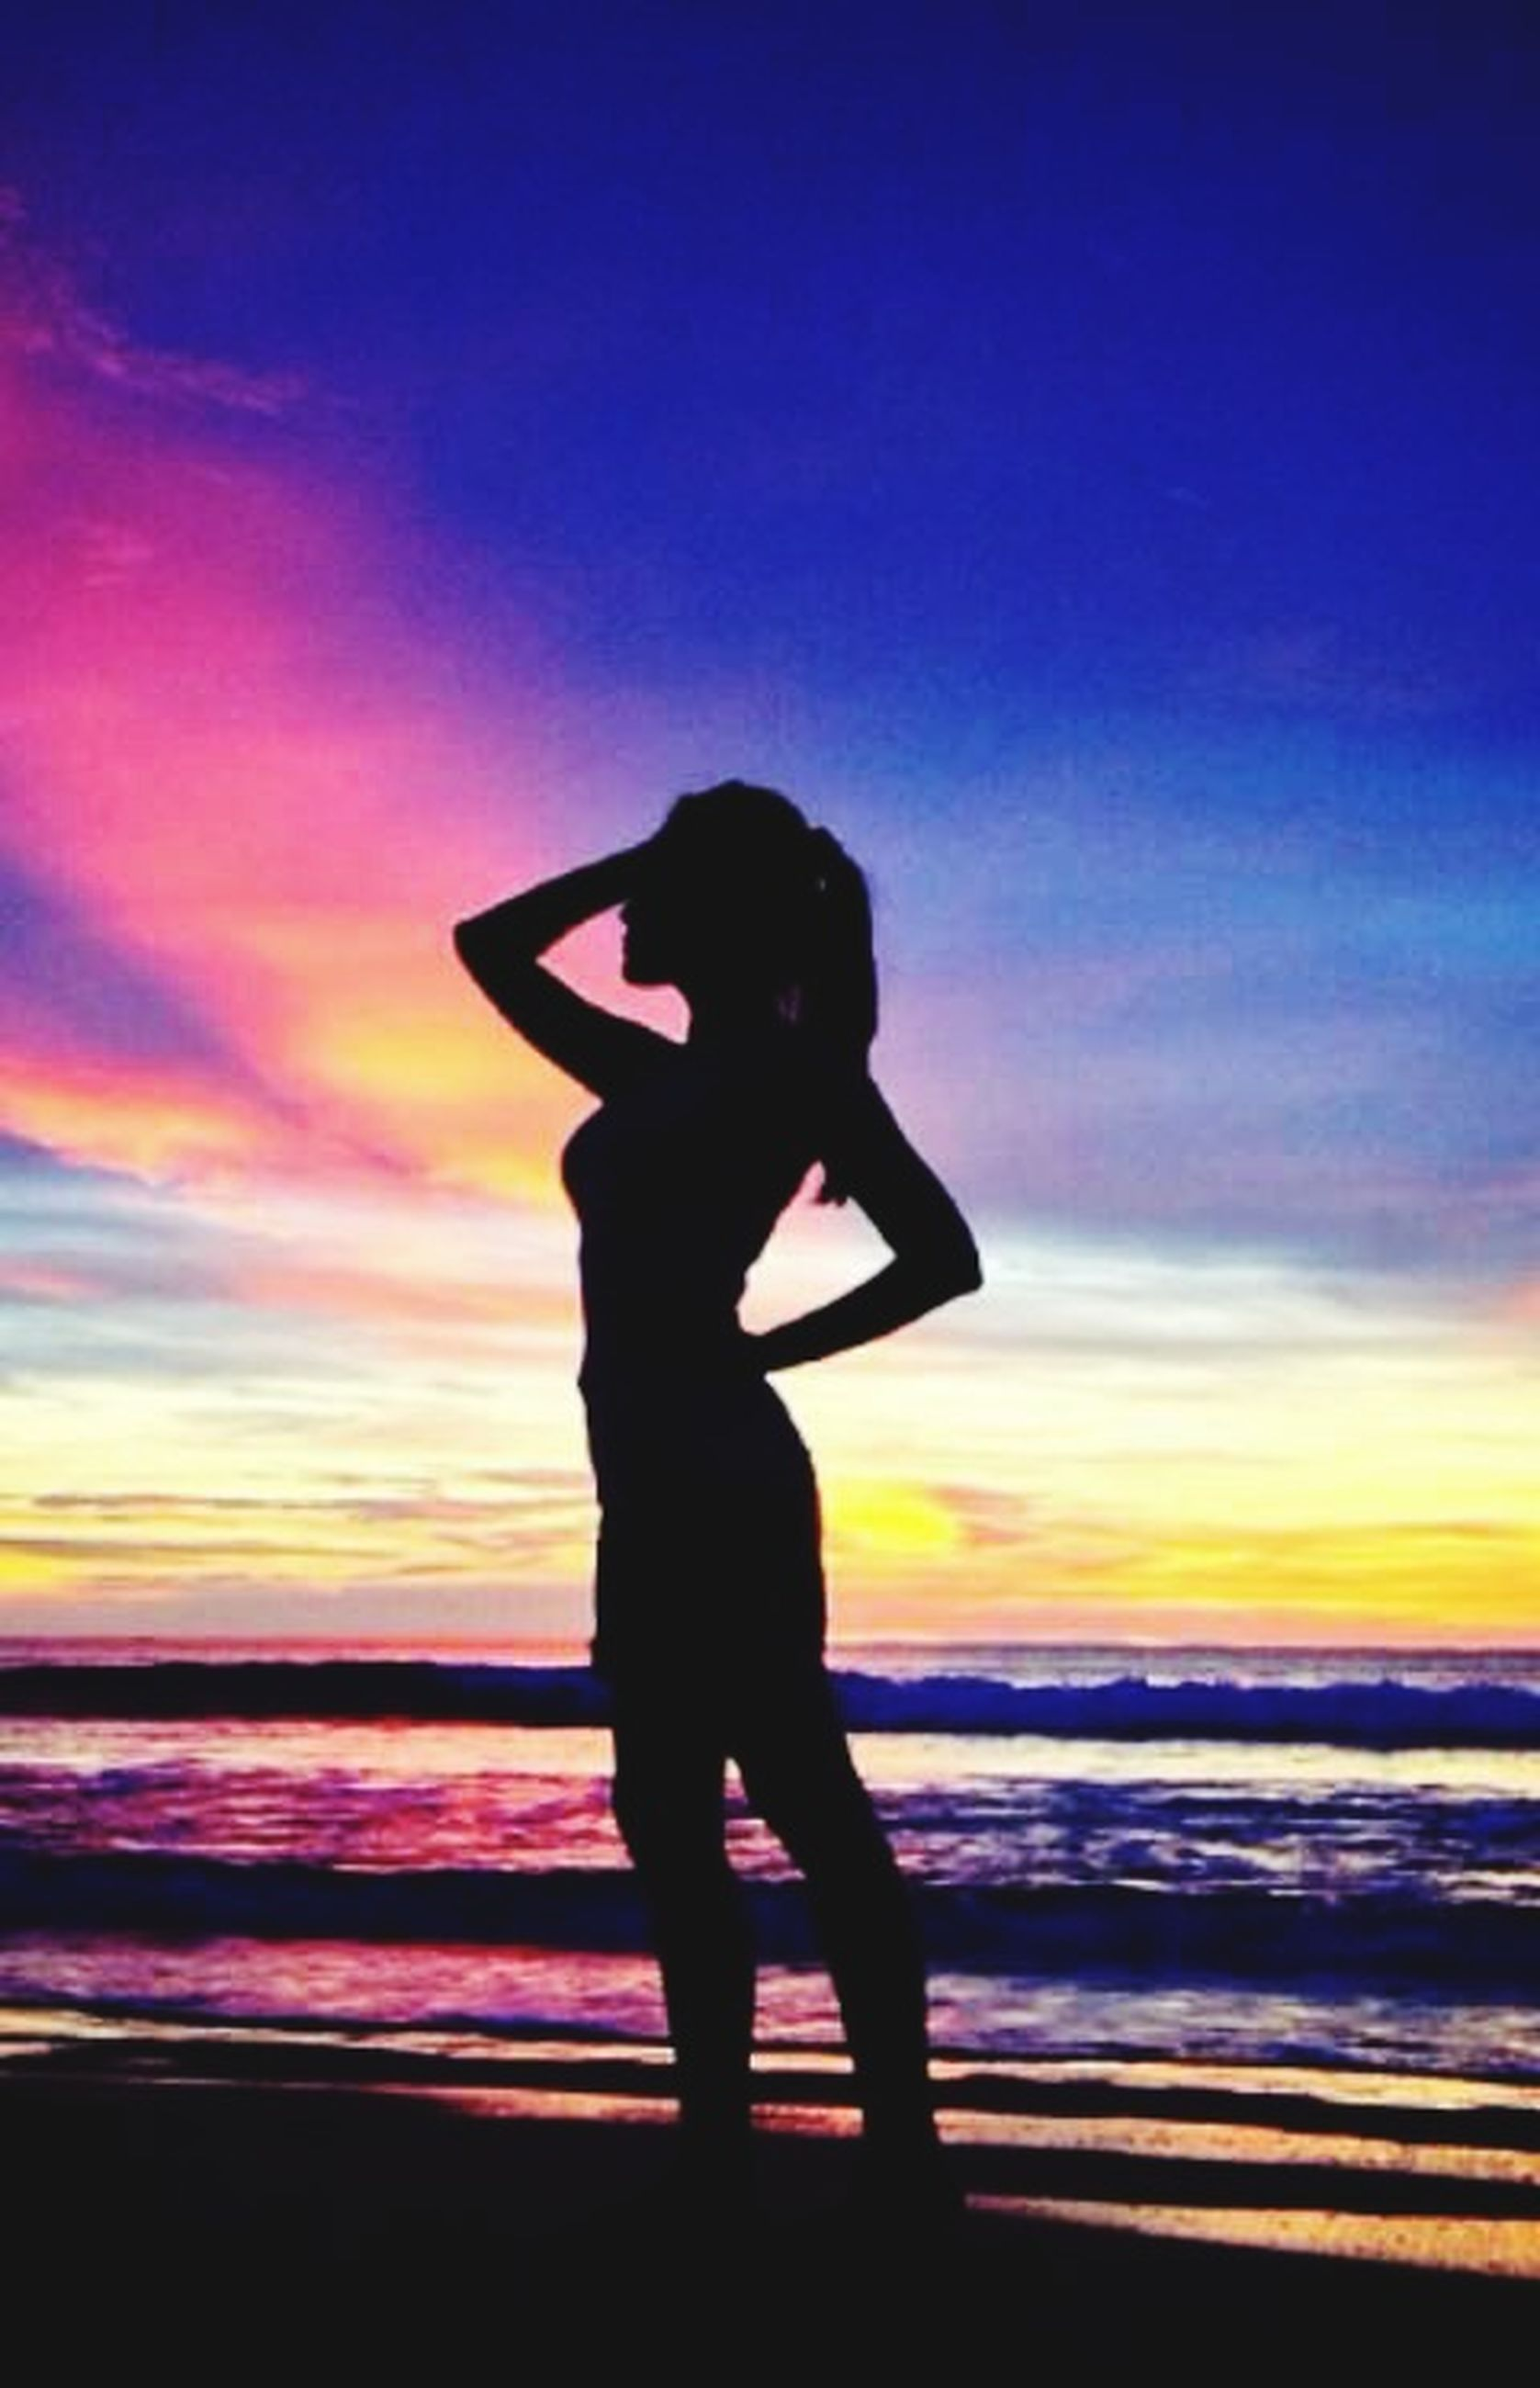 sunset, silhouette, sky, standing, lifestyles, leisure activity, full length, cloud - sky, orange color, sea, beach, dusk, outdoors, horizon over water, side view, three quarter length, water, nature